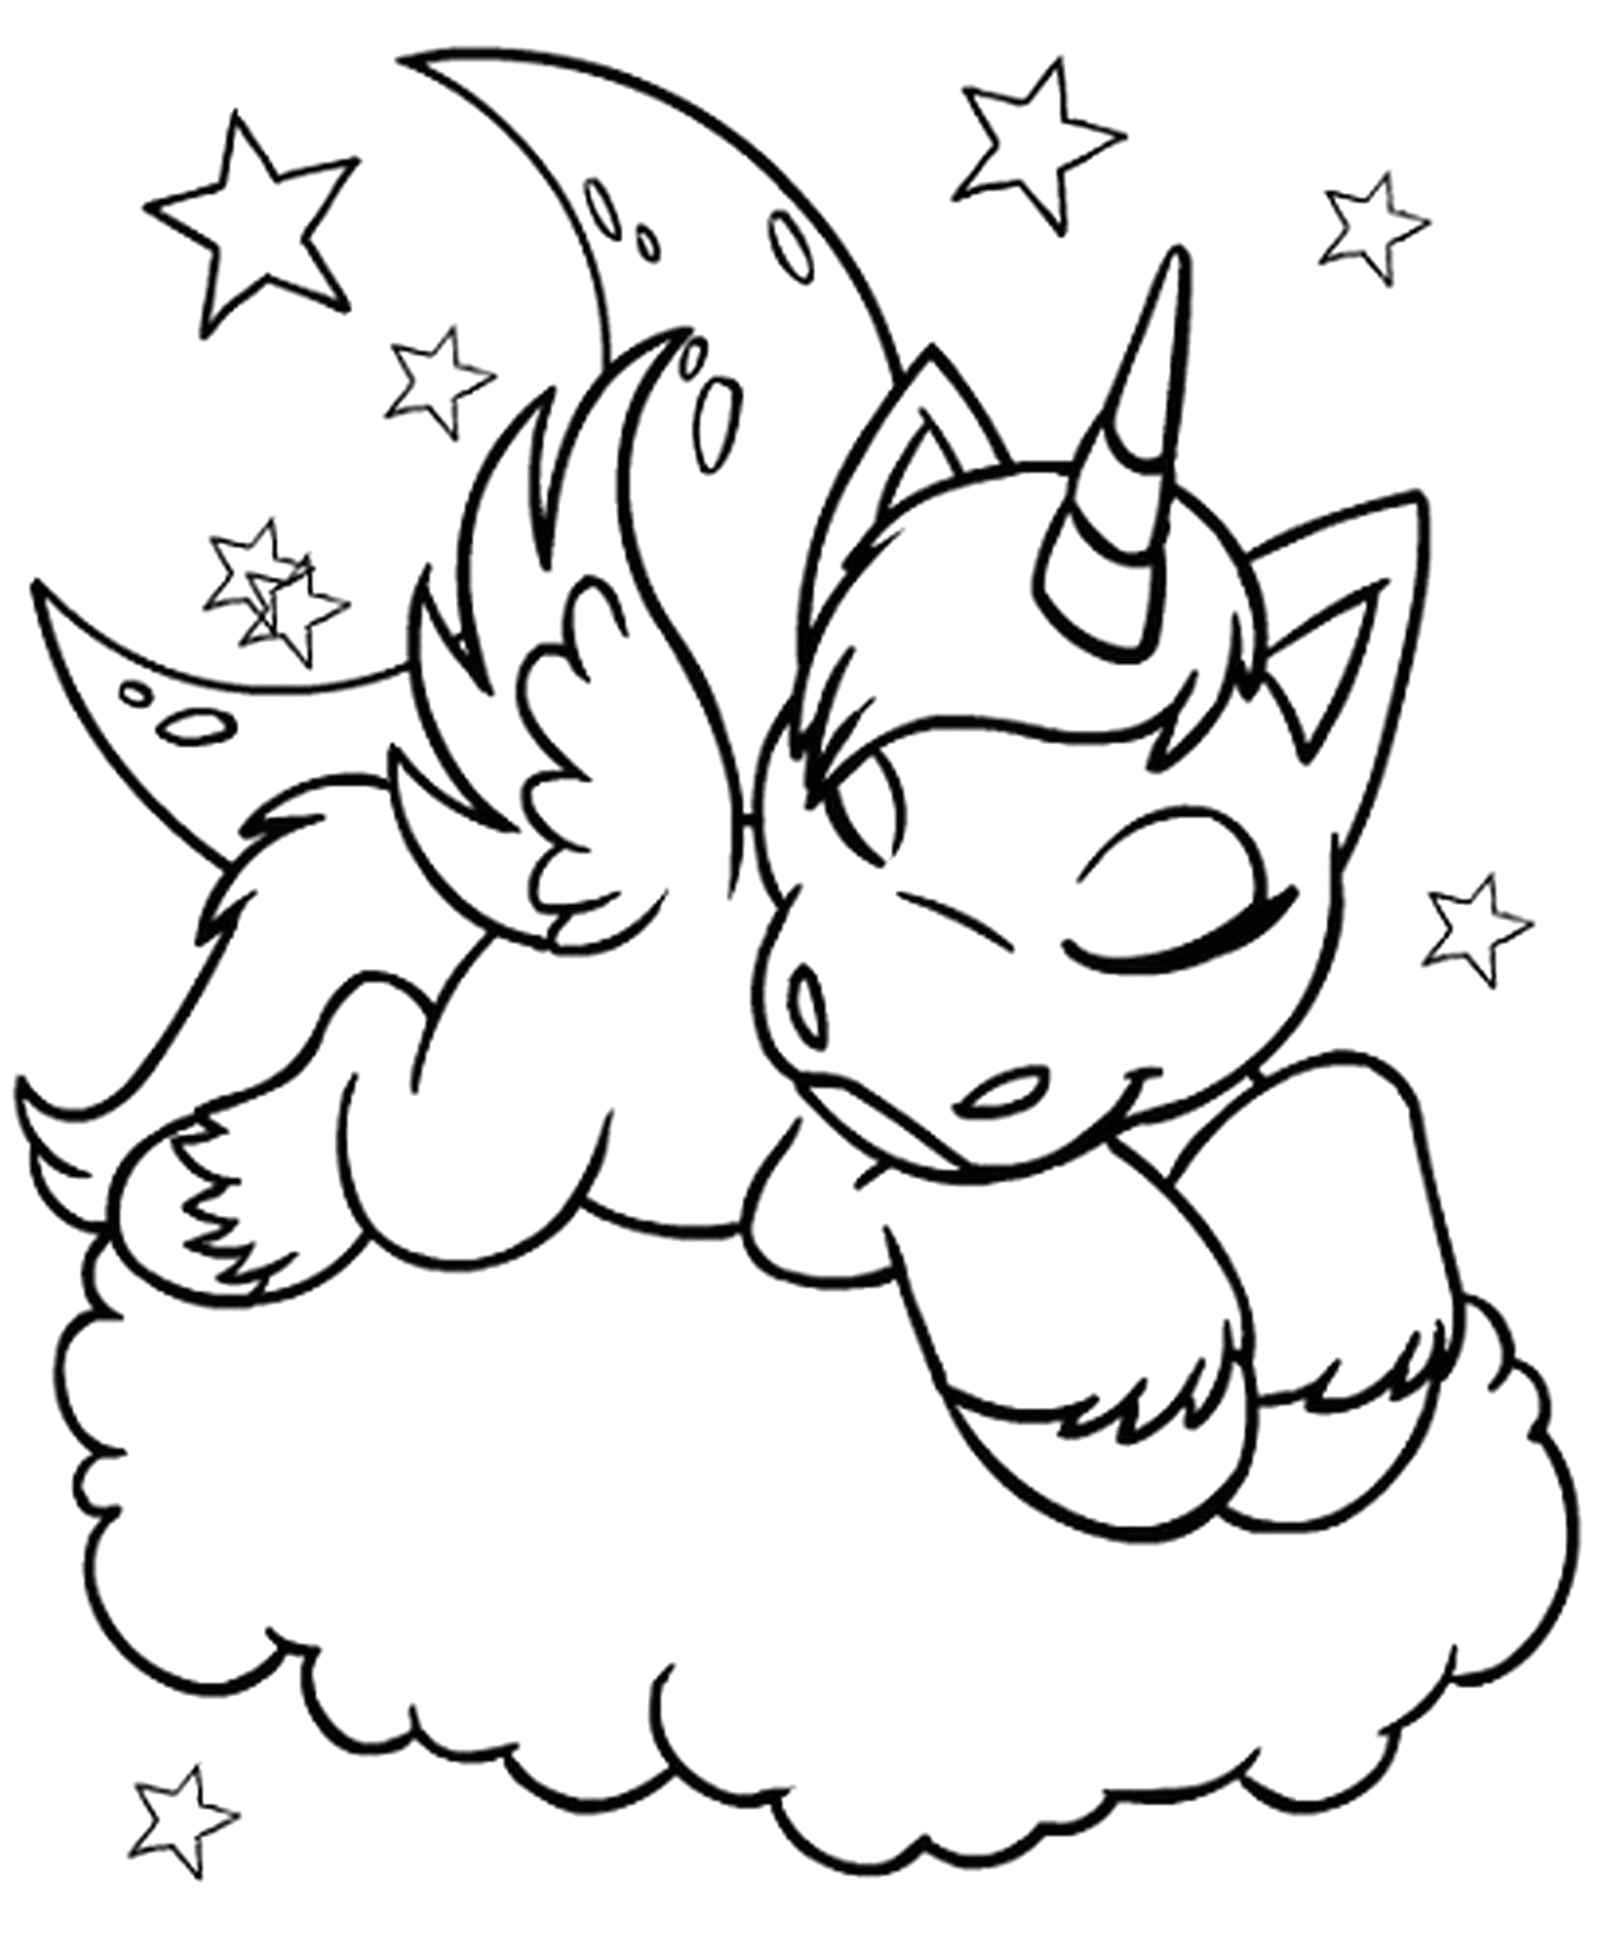 Unicorn Coloring Pages to Print for Free Unicorn Coloring Pages Free – Learning Printable